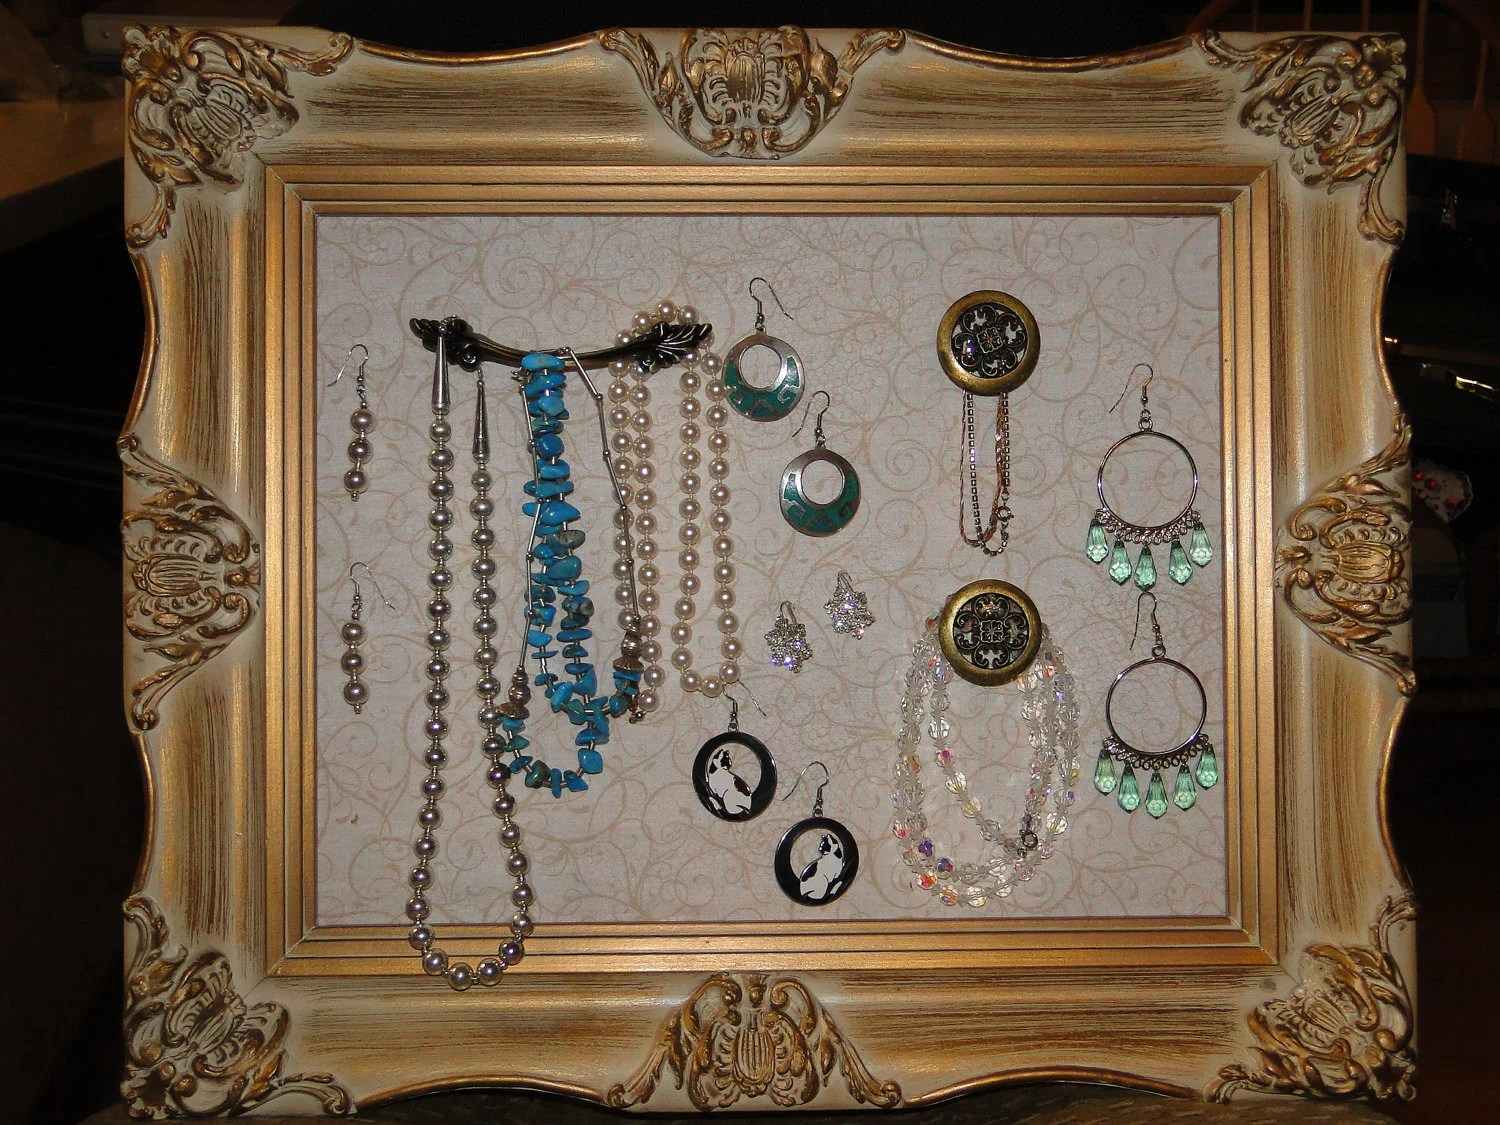 Schmuck Bilderrahmen Picture Frame Jewelry Holder / Organizer By Projectpinterest